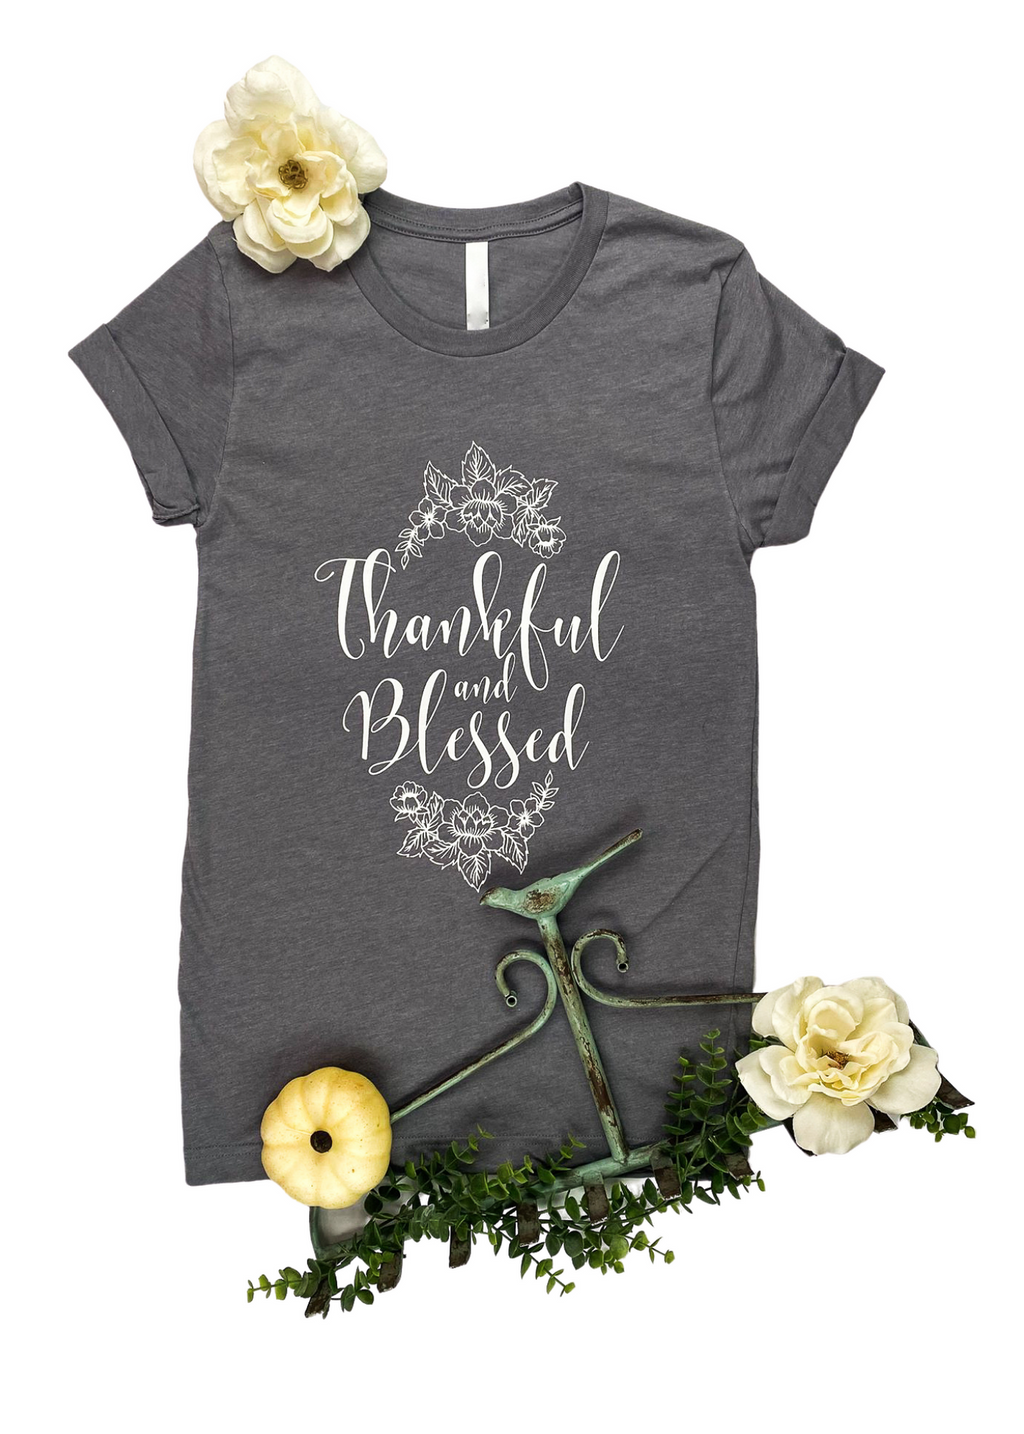 "Heather Grey Short Sleeve Tee with ""Thankful & Blessed"" and Floral Graphic in White Ink in the center"